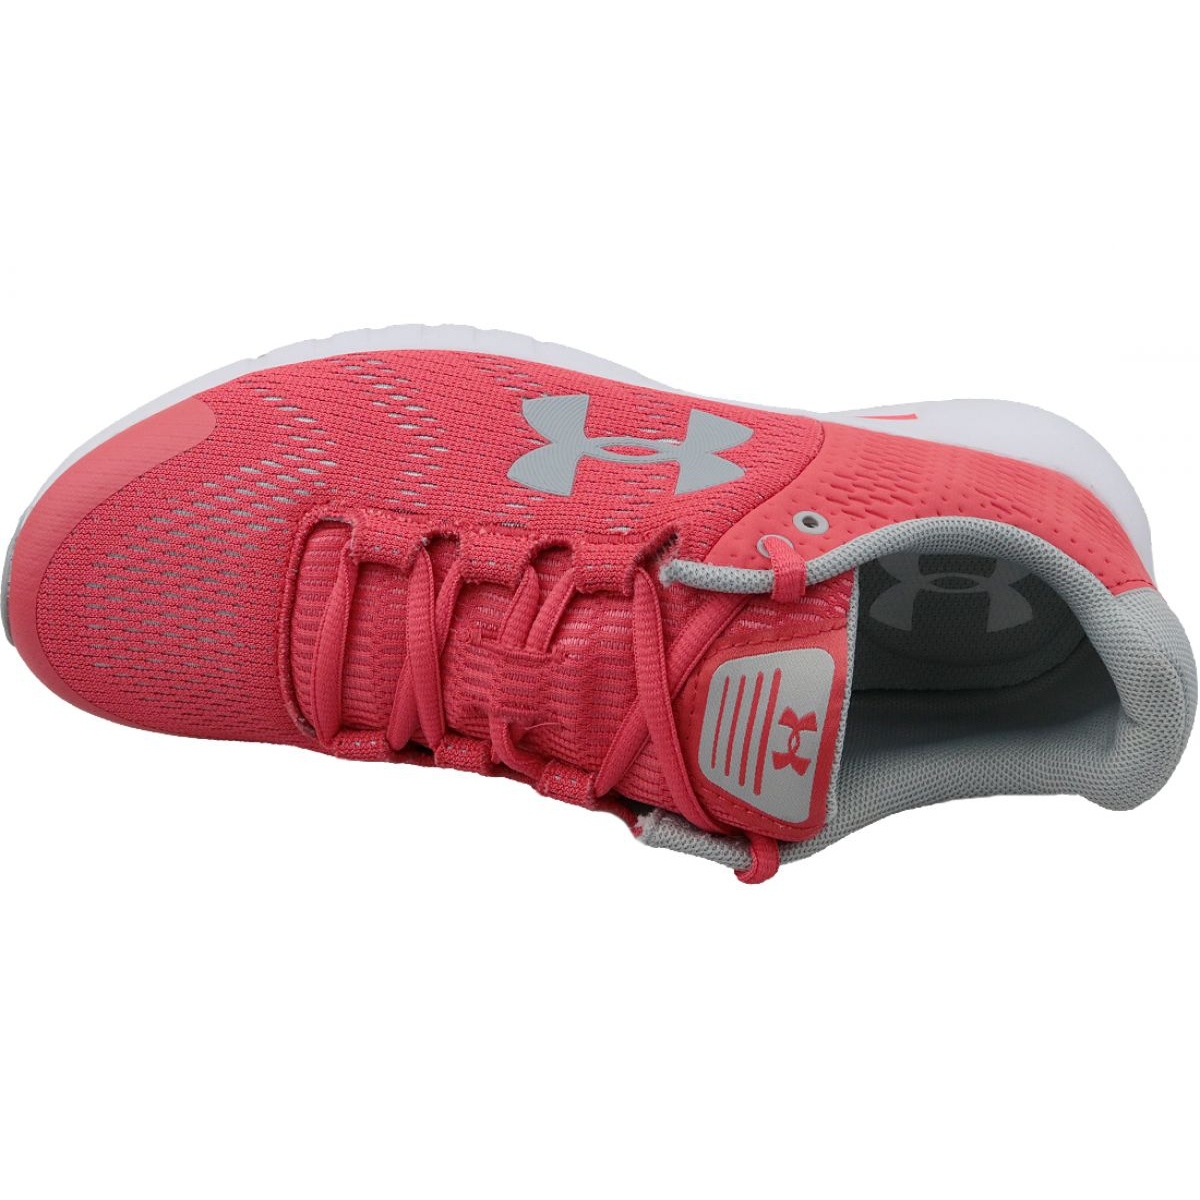 Under Armour Women/'s Micro G Pursuit BP Running Shoe Red  3021969-600